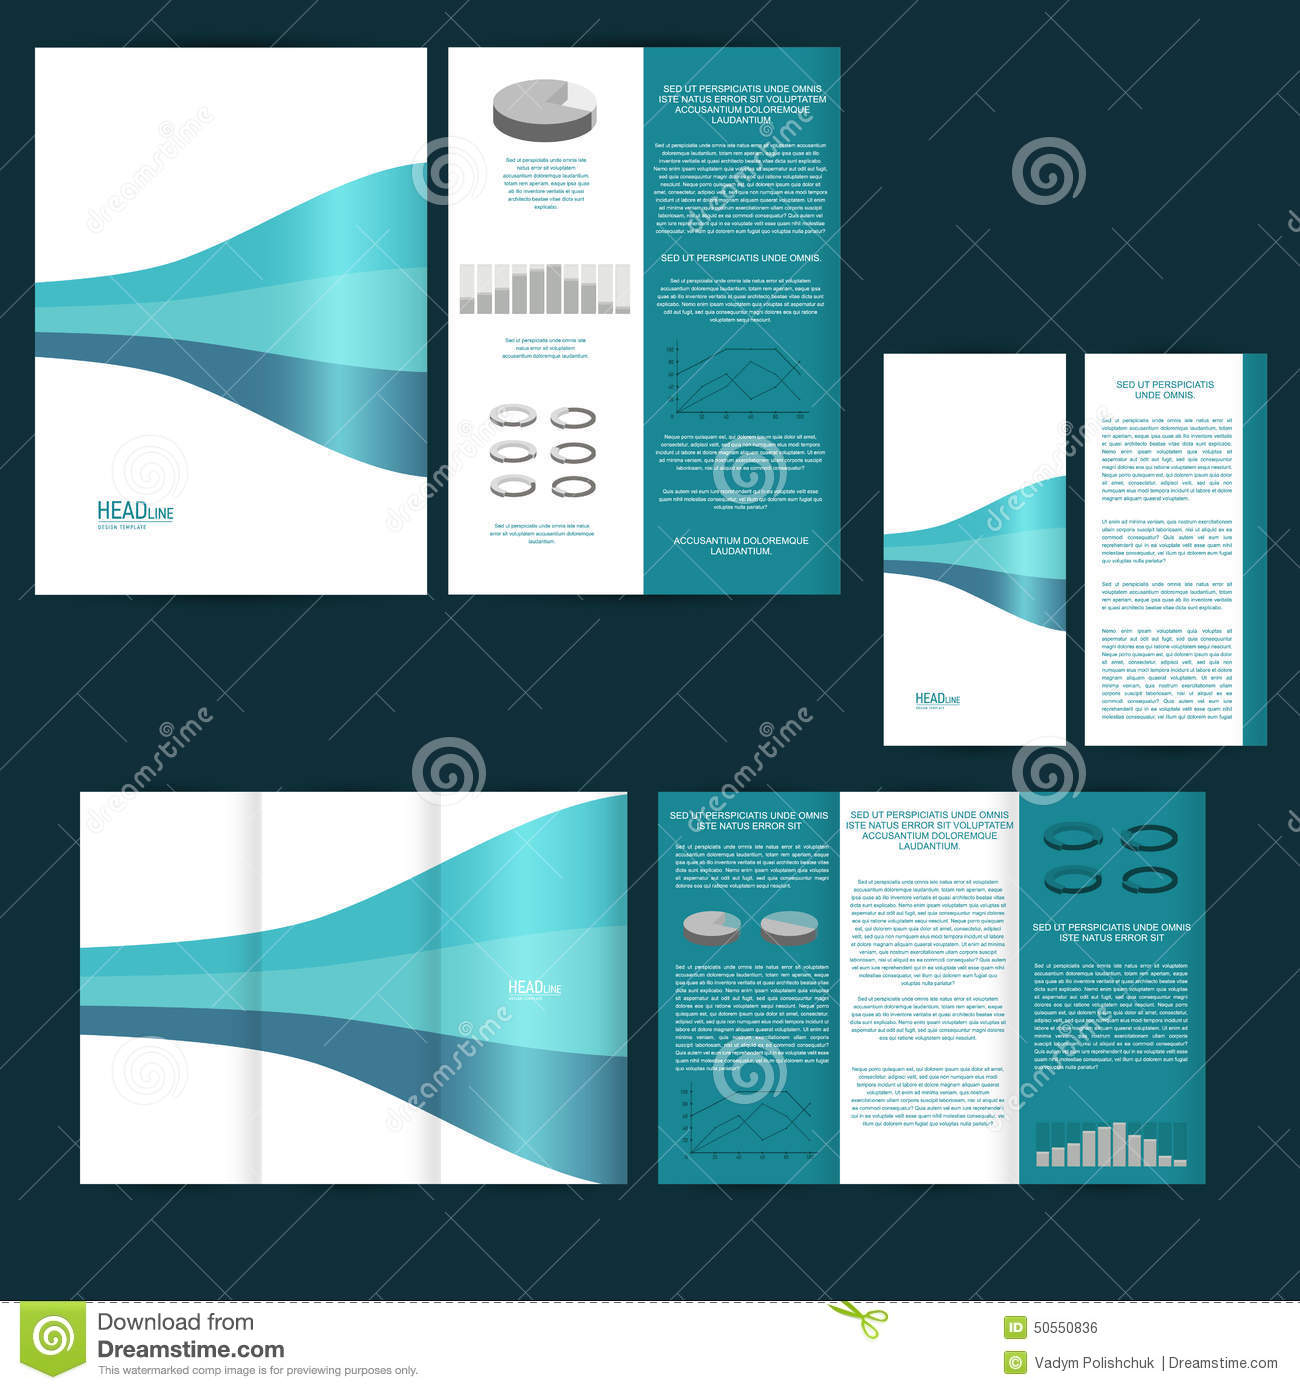 Poster design and printing - Advertising Brochure Business Corporate Design Flyer Identity Other Poster Printing